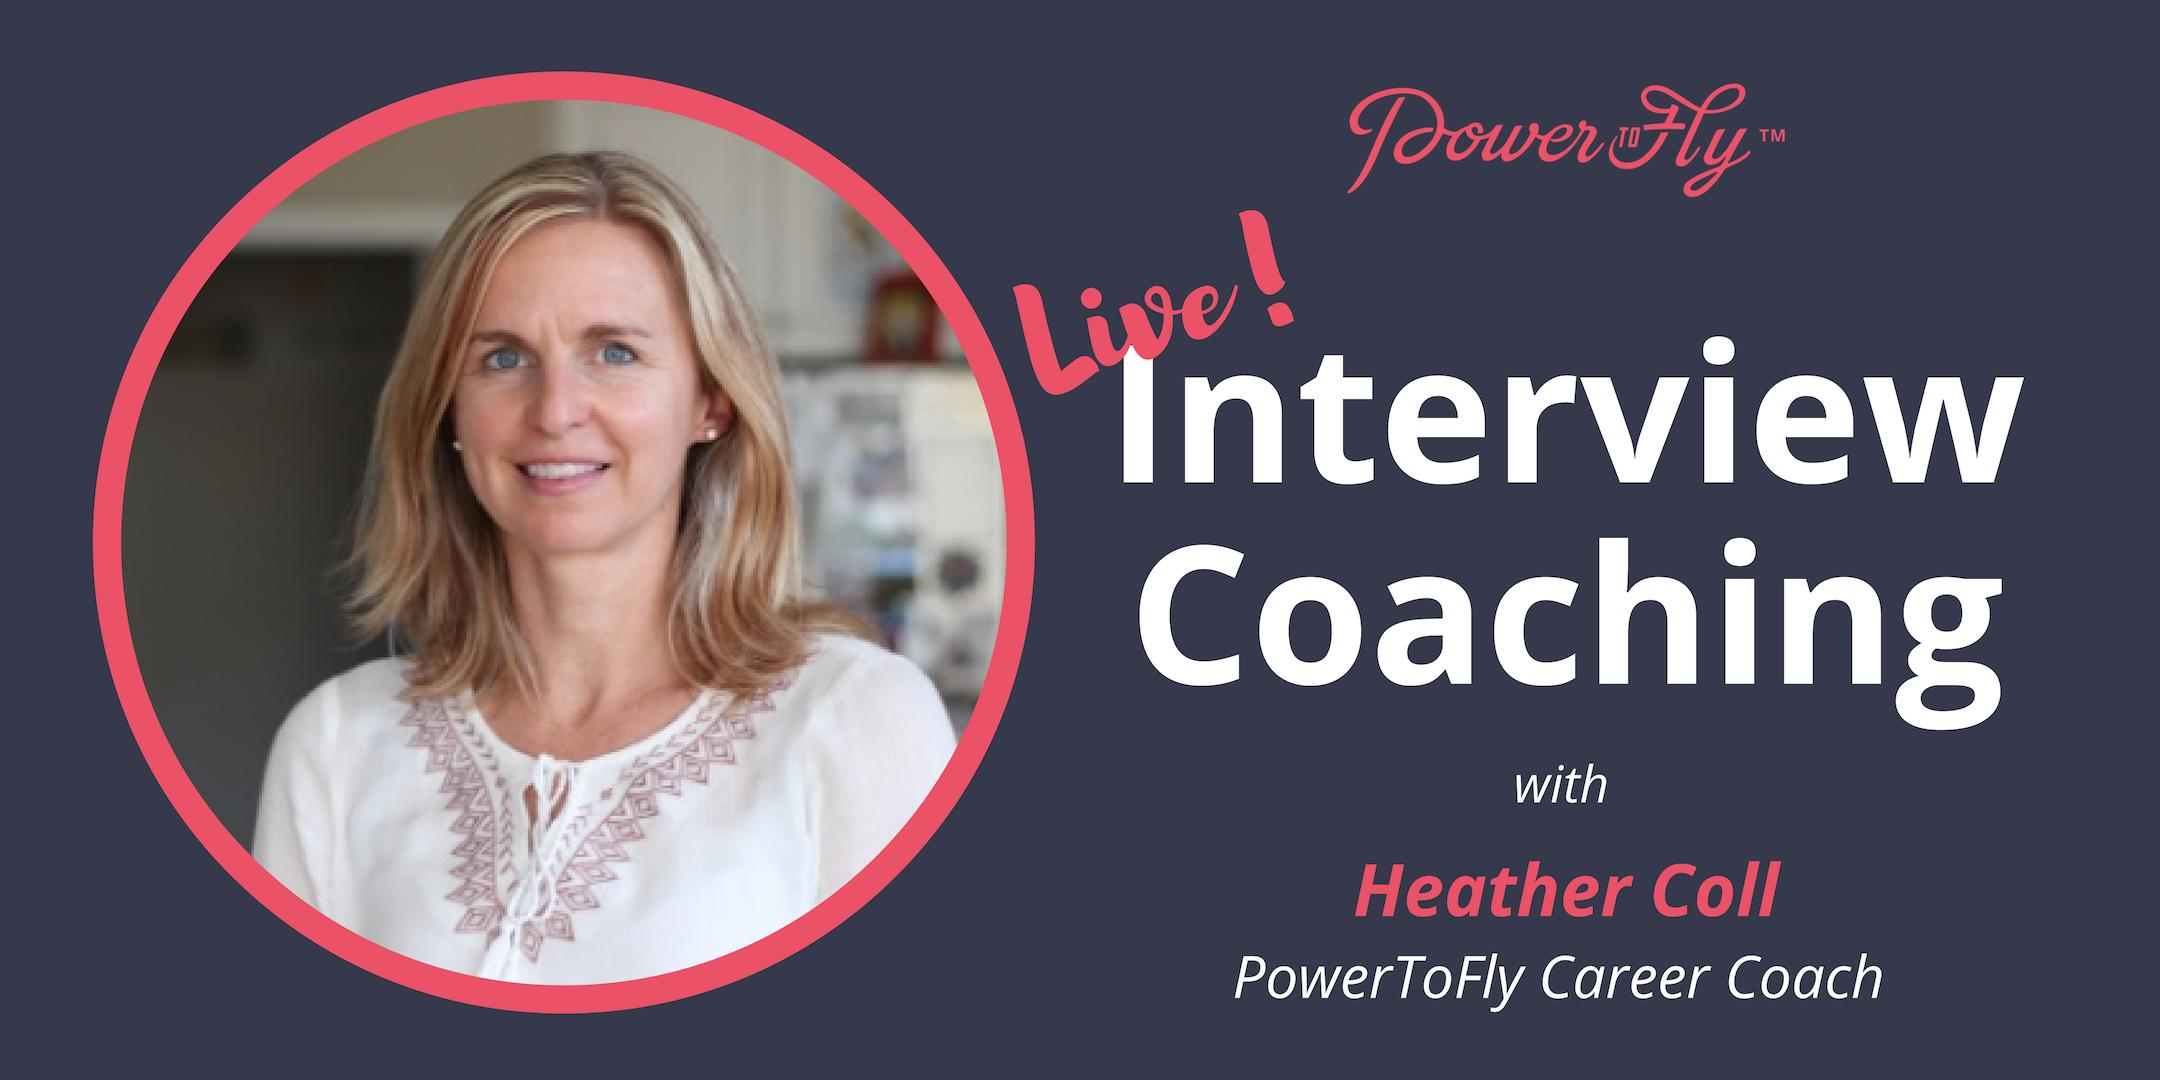 *LIVE* Interview Coaching With PowerToFly's Career Coach 7/11